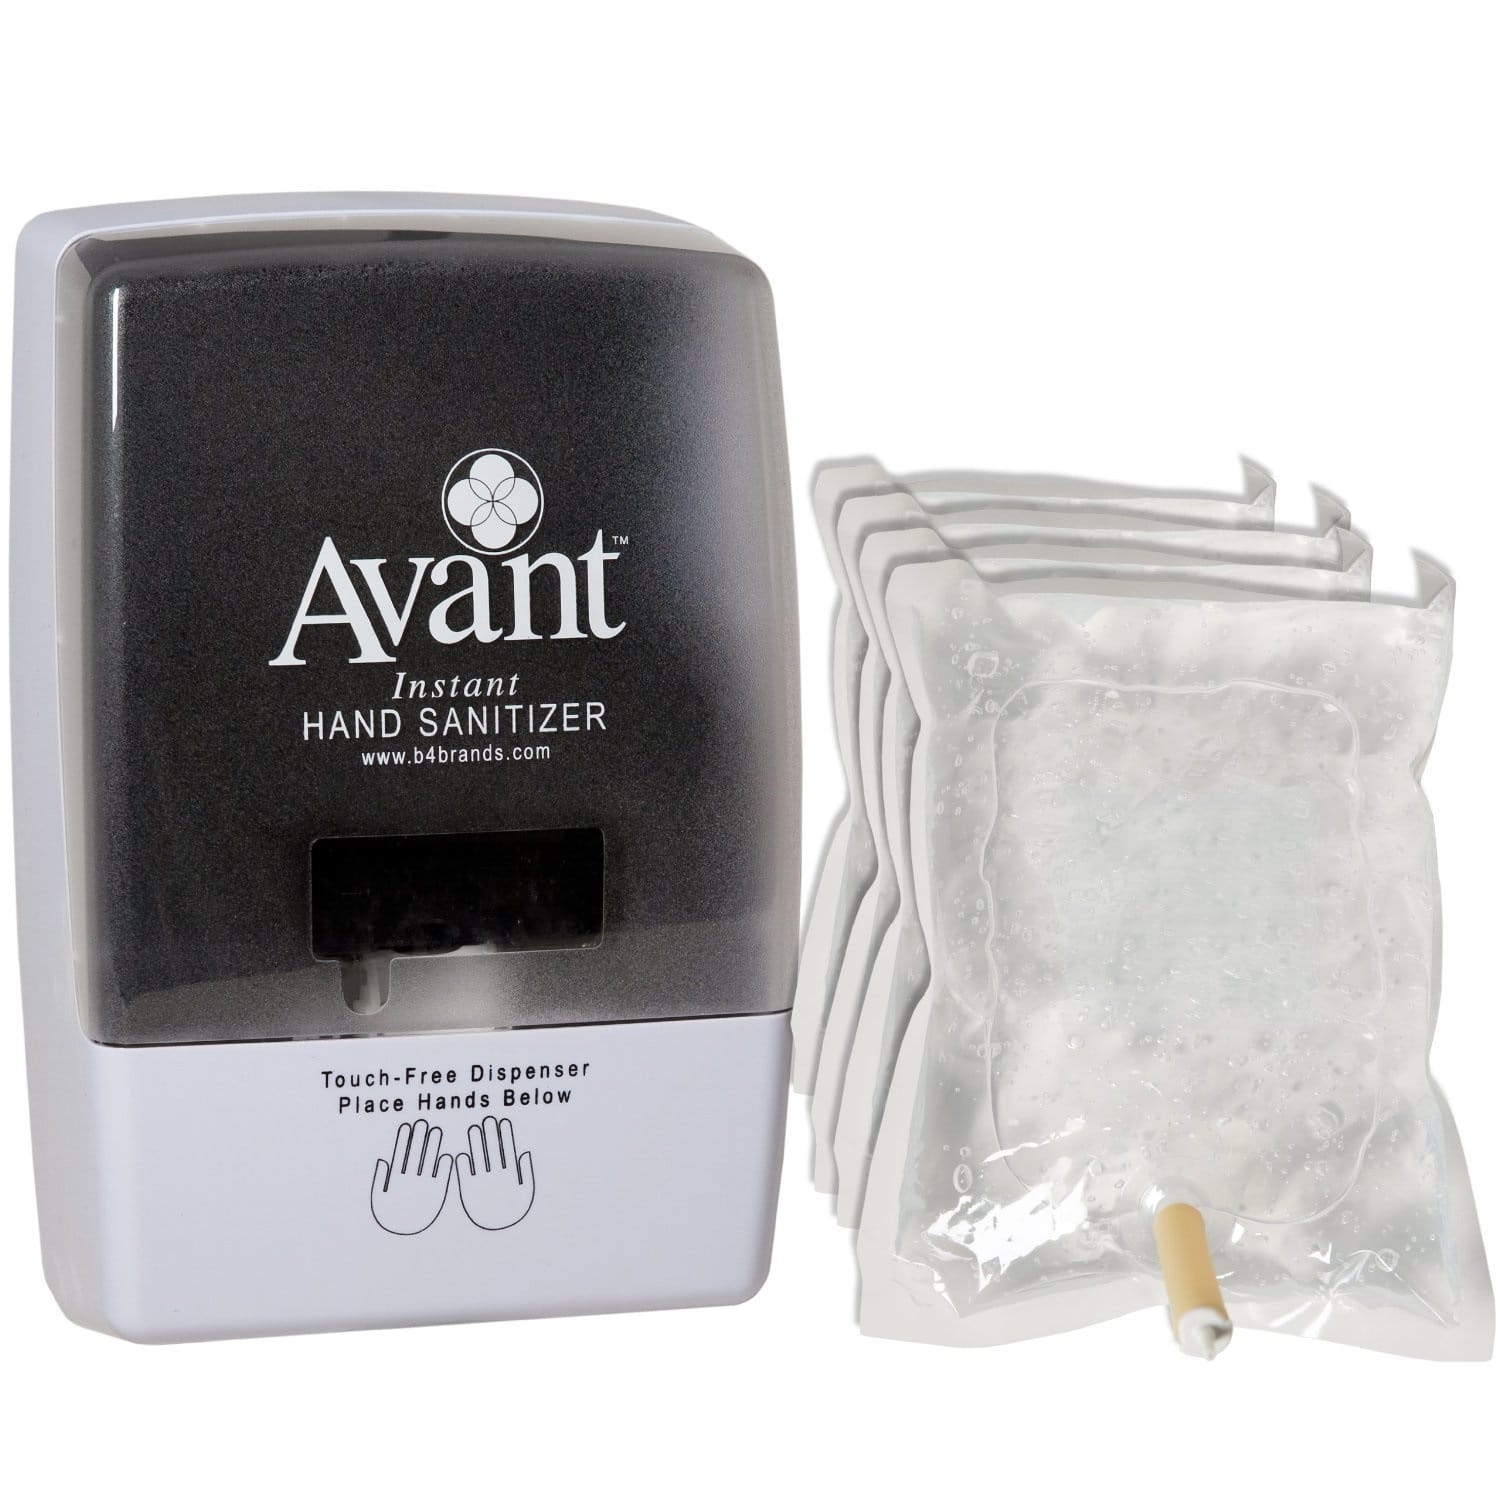 Free 9370 automatic dispenser with the purchase of (4) Avant hand sanitizer refills.